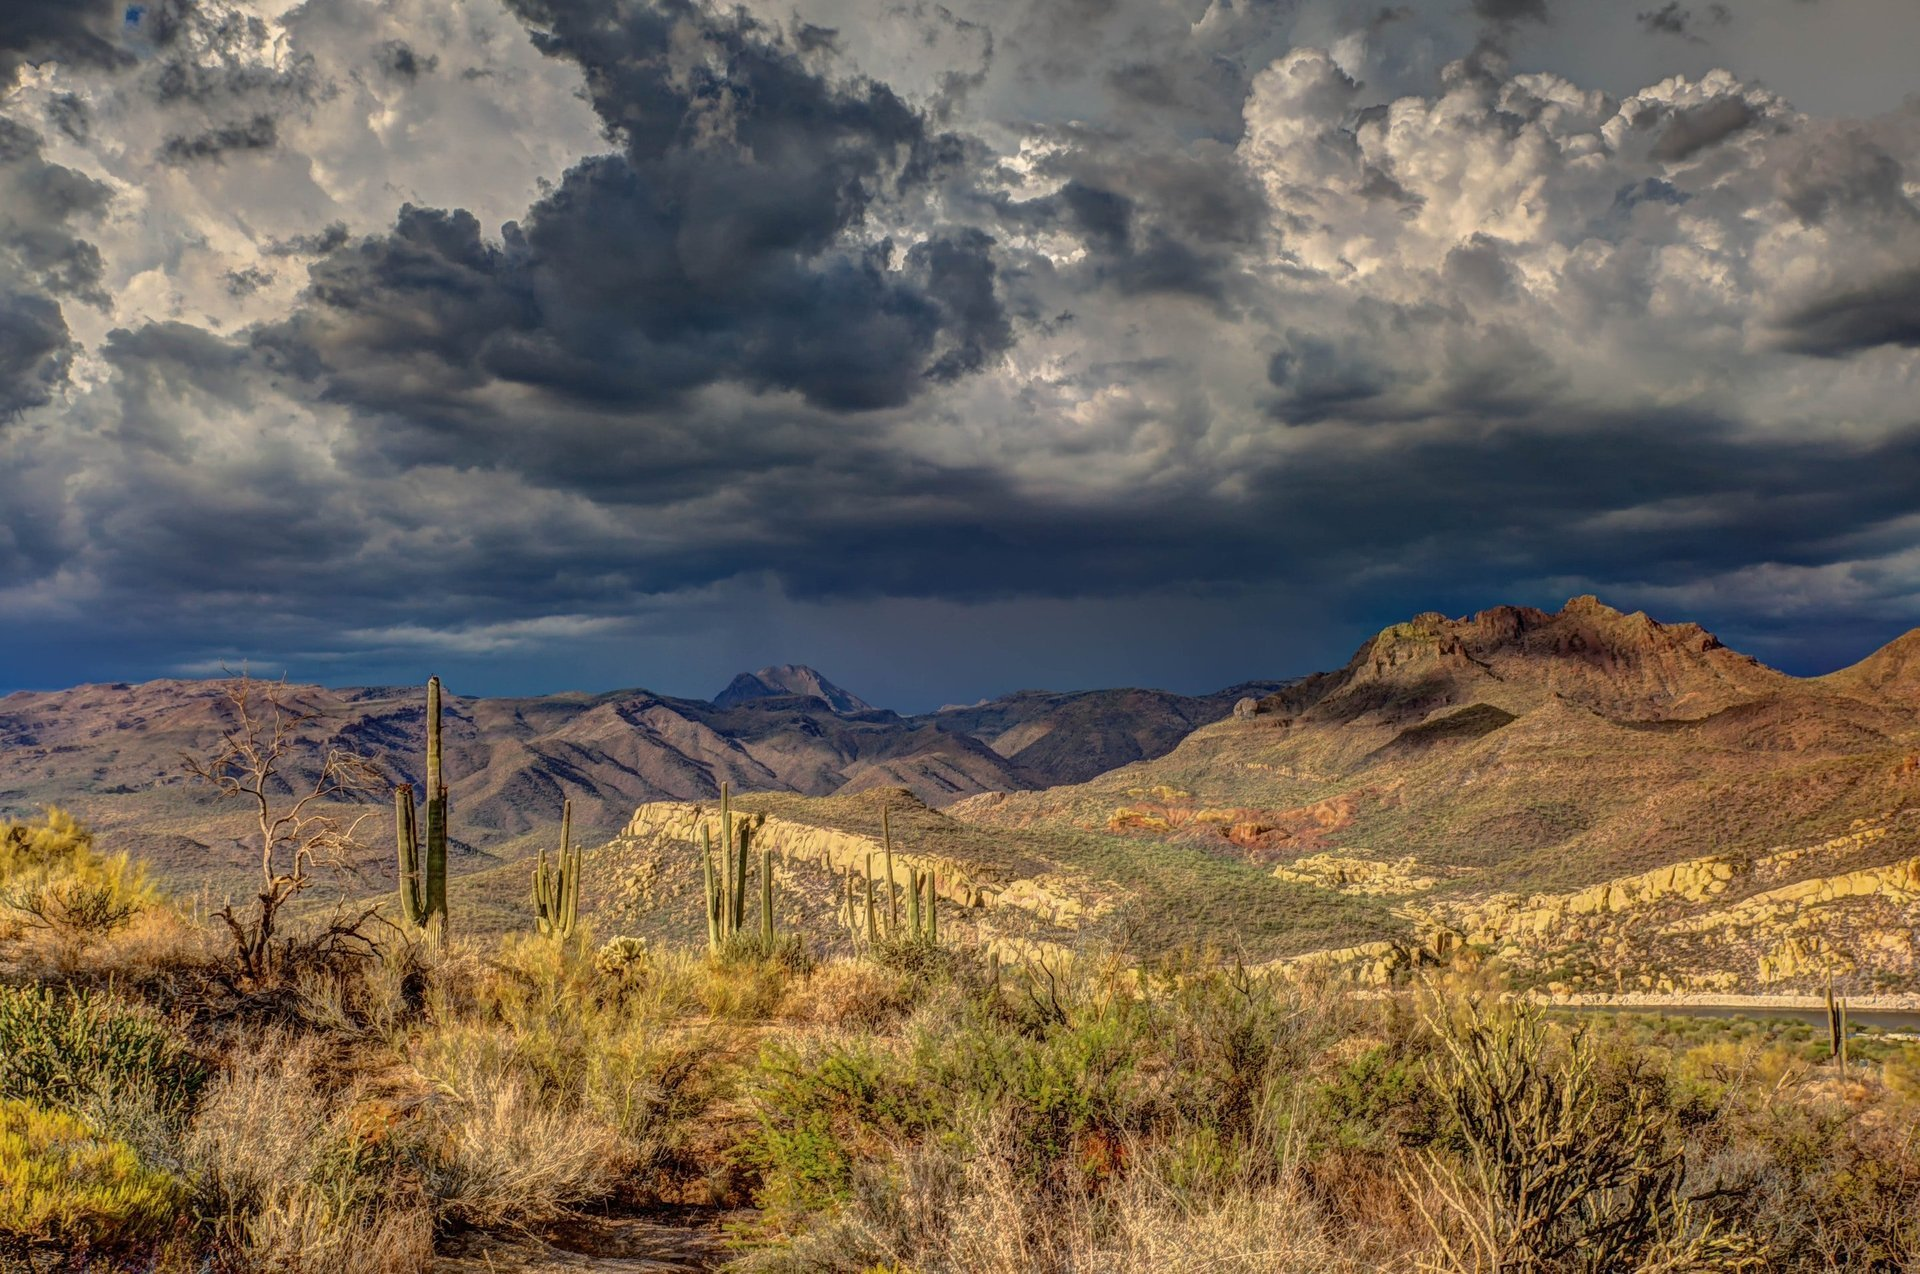 Storm clouds over the high desert